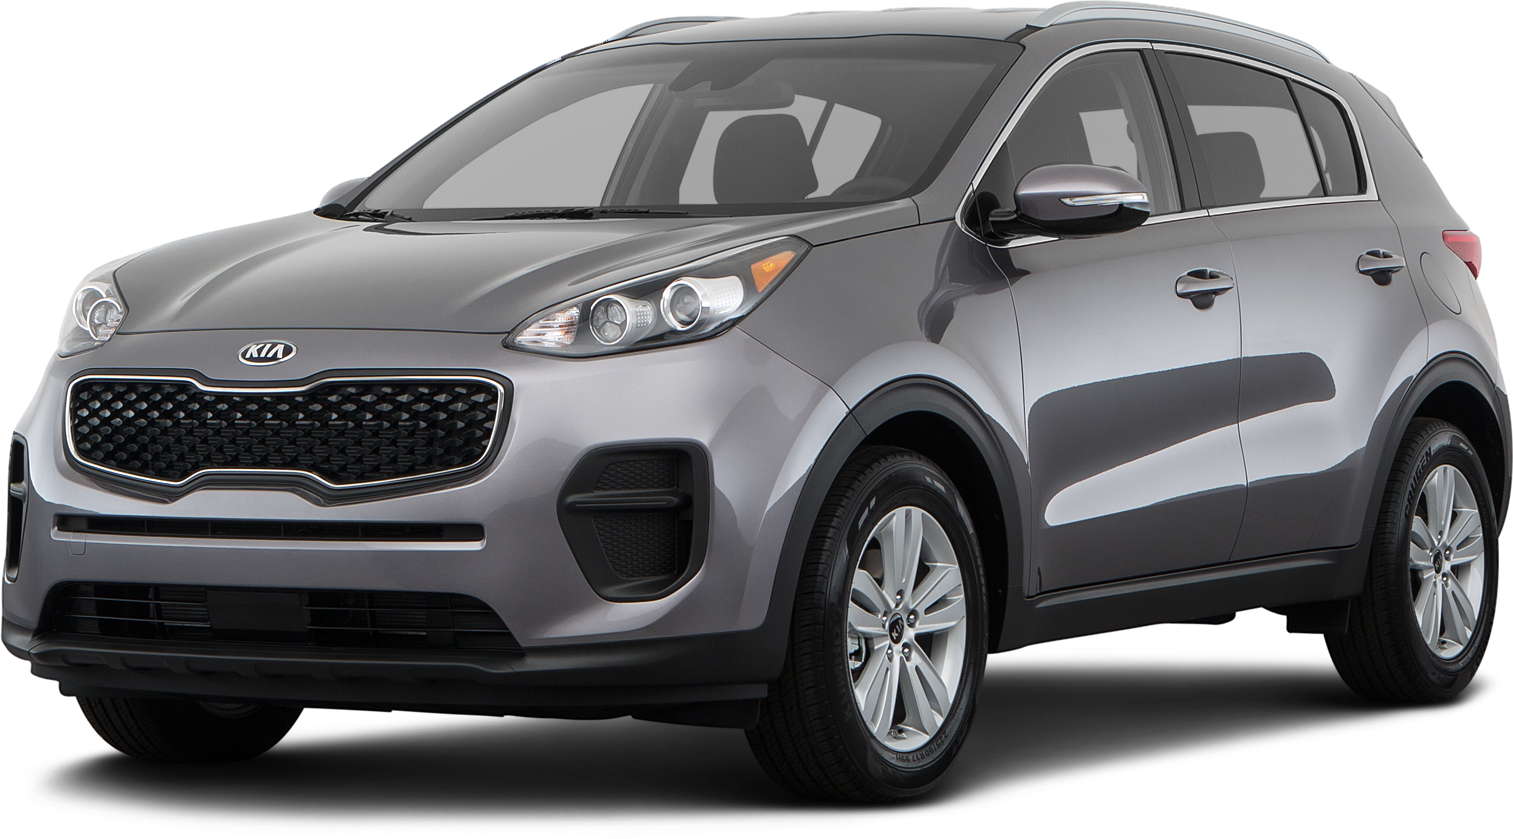 Captivating 2019 Kia Sportage SUV